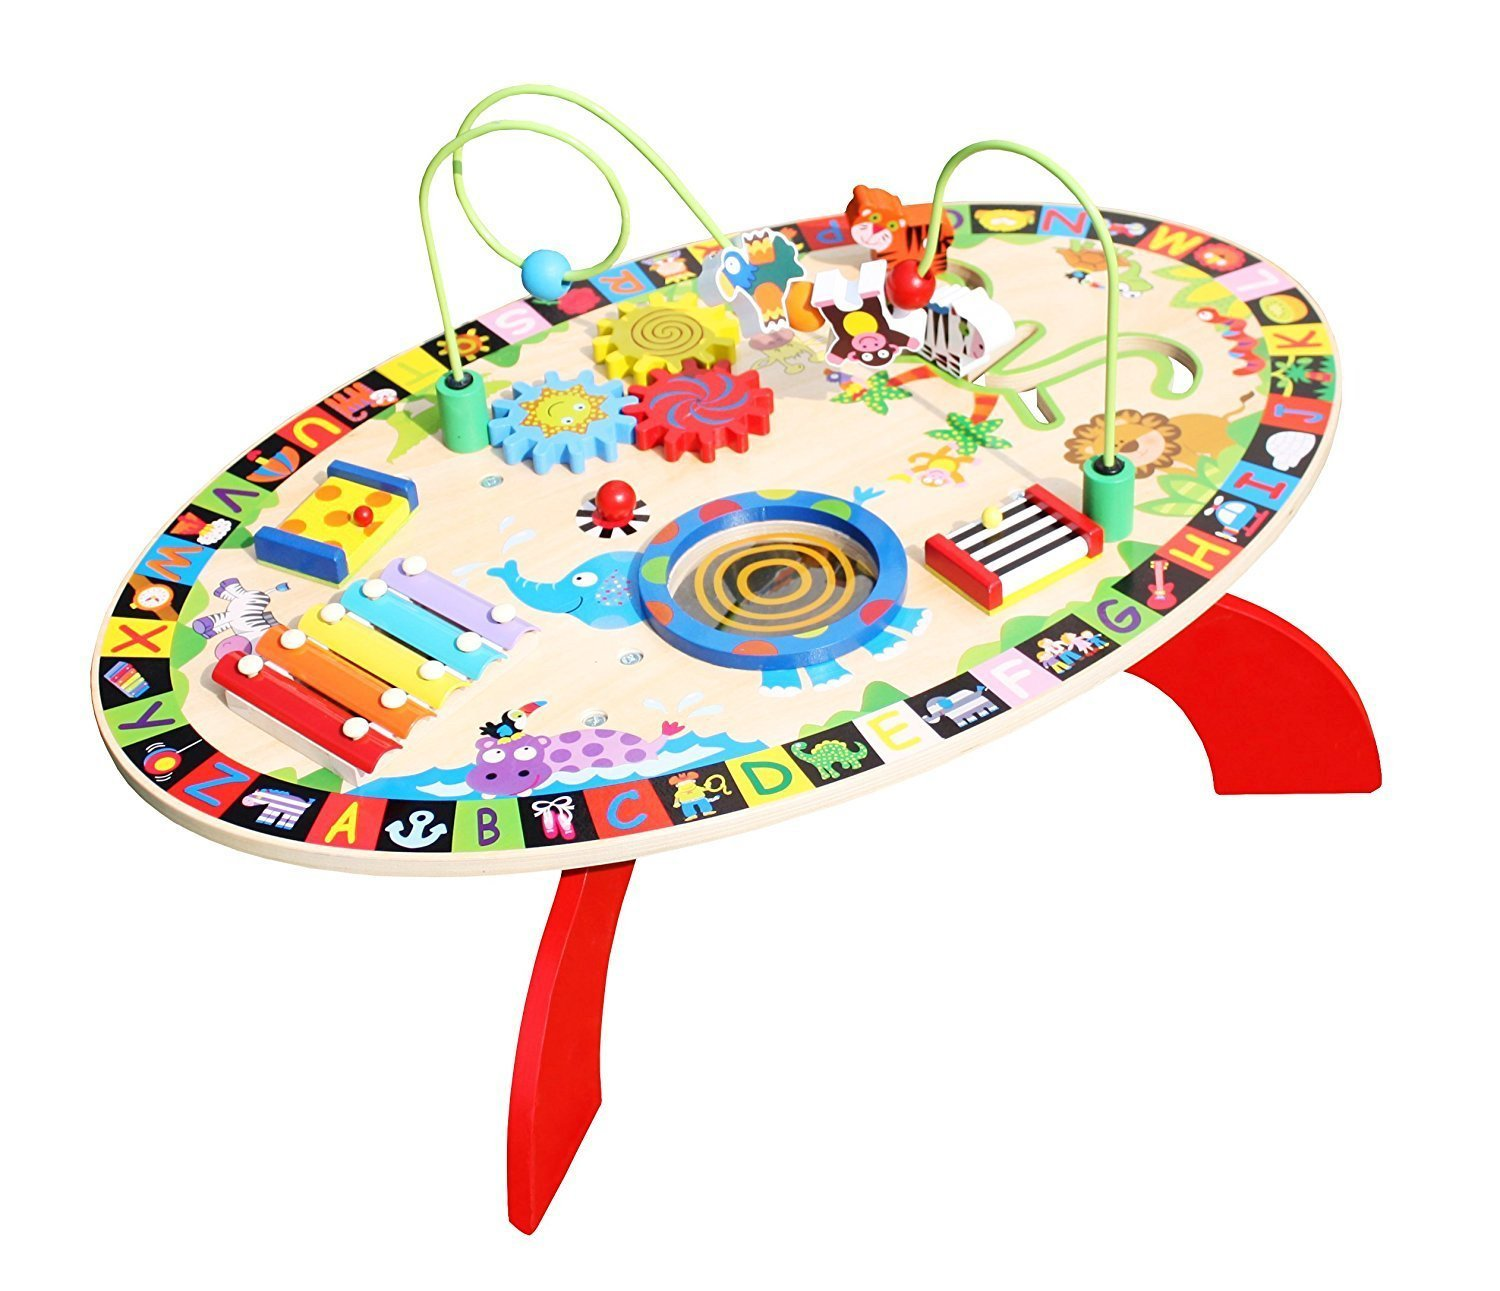 Amazon.com: Pidoko Kids All In 1 Multi Activity Learning Center   Wooden  Play Table For Toddlers Preschool Age   Multifunctional Baby Educational  Toy With ...